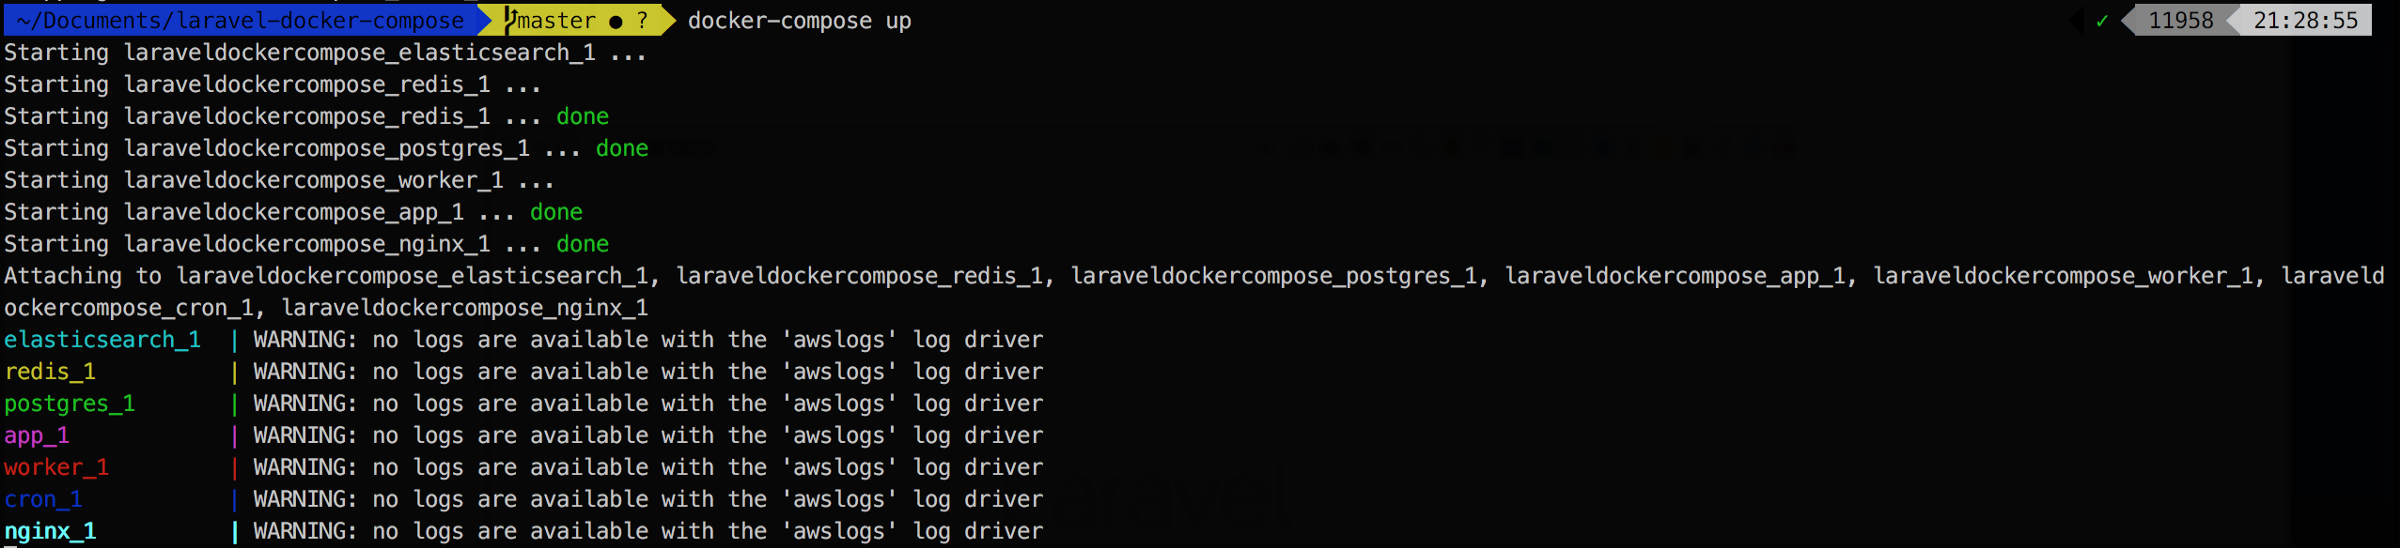 Stop deploying Laravel manually, steal this Docker configuration